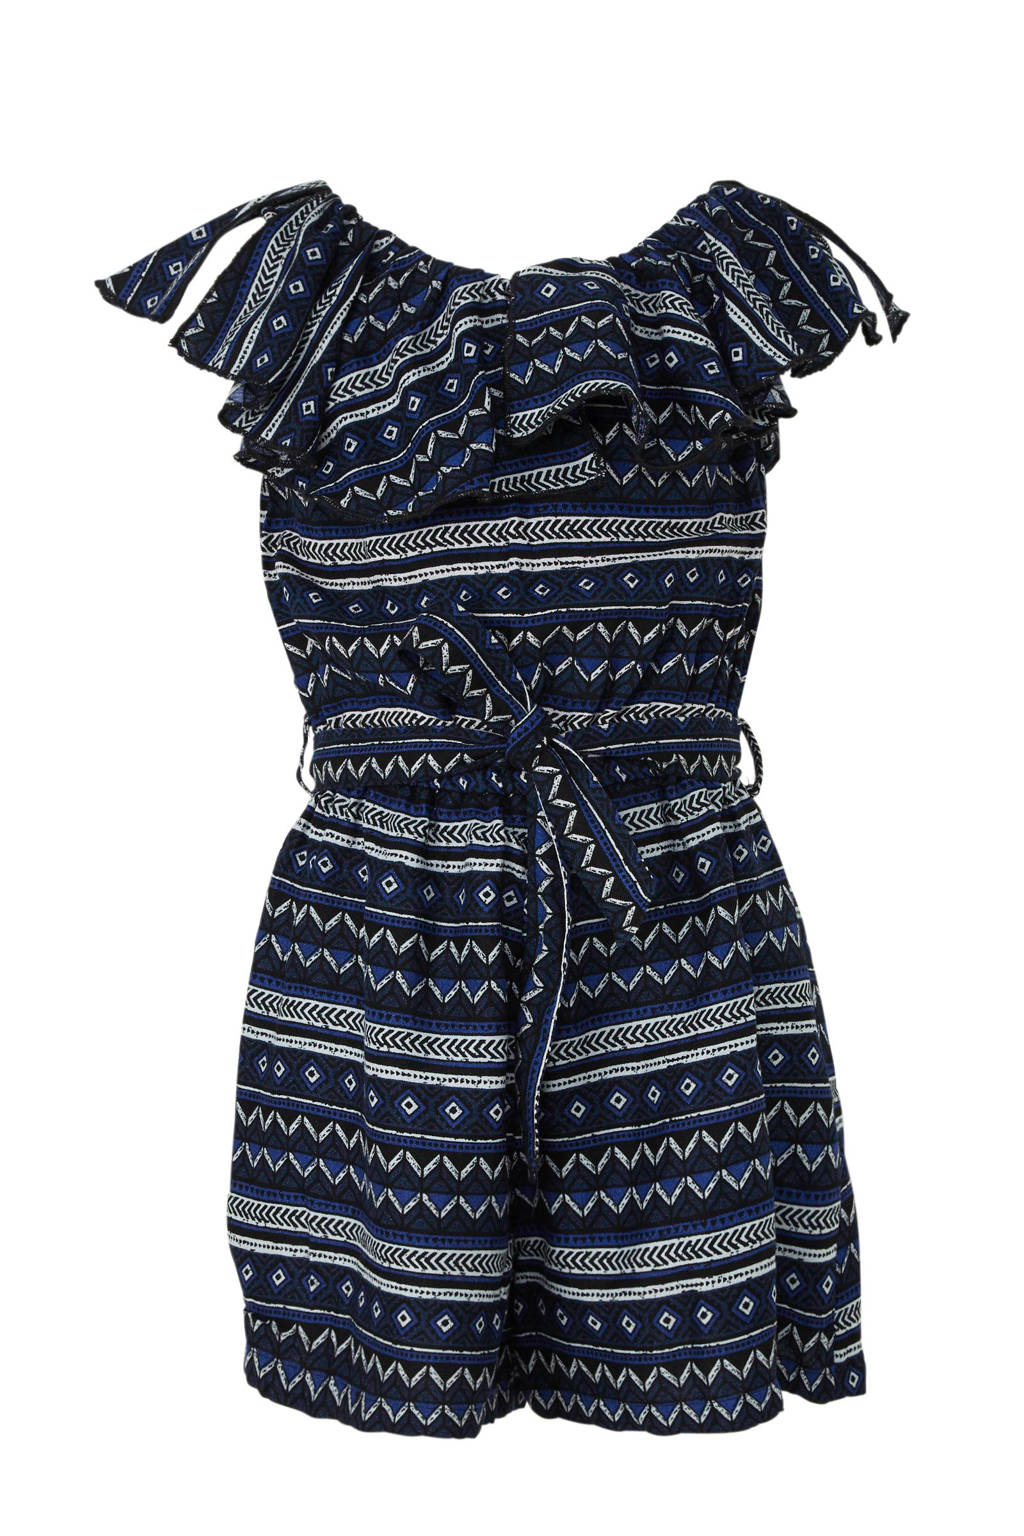 C&A Here & There jumpsuit met grafische print donkerblauw/grijs/zwart, Donkerblauw/grijs/zwart